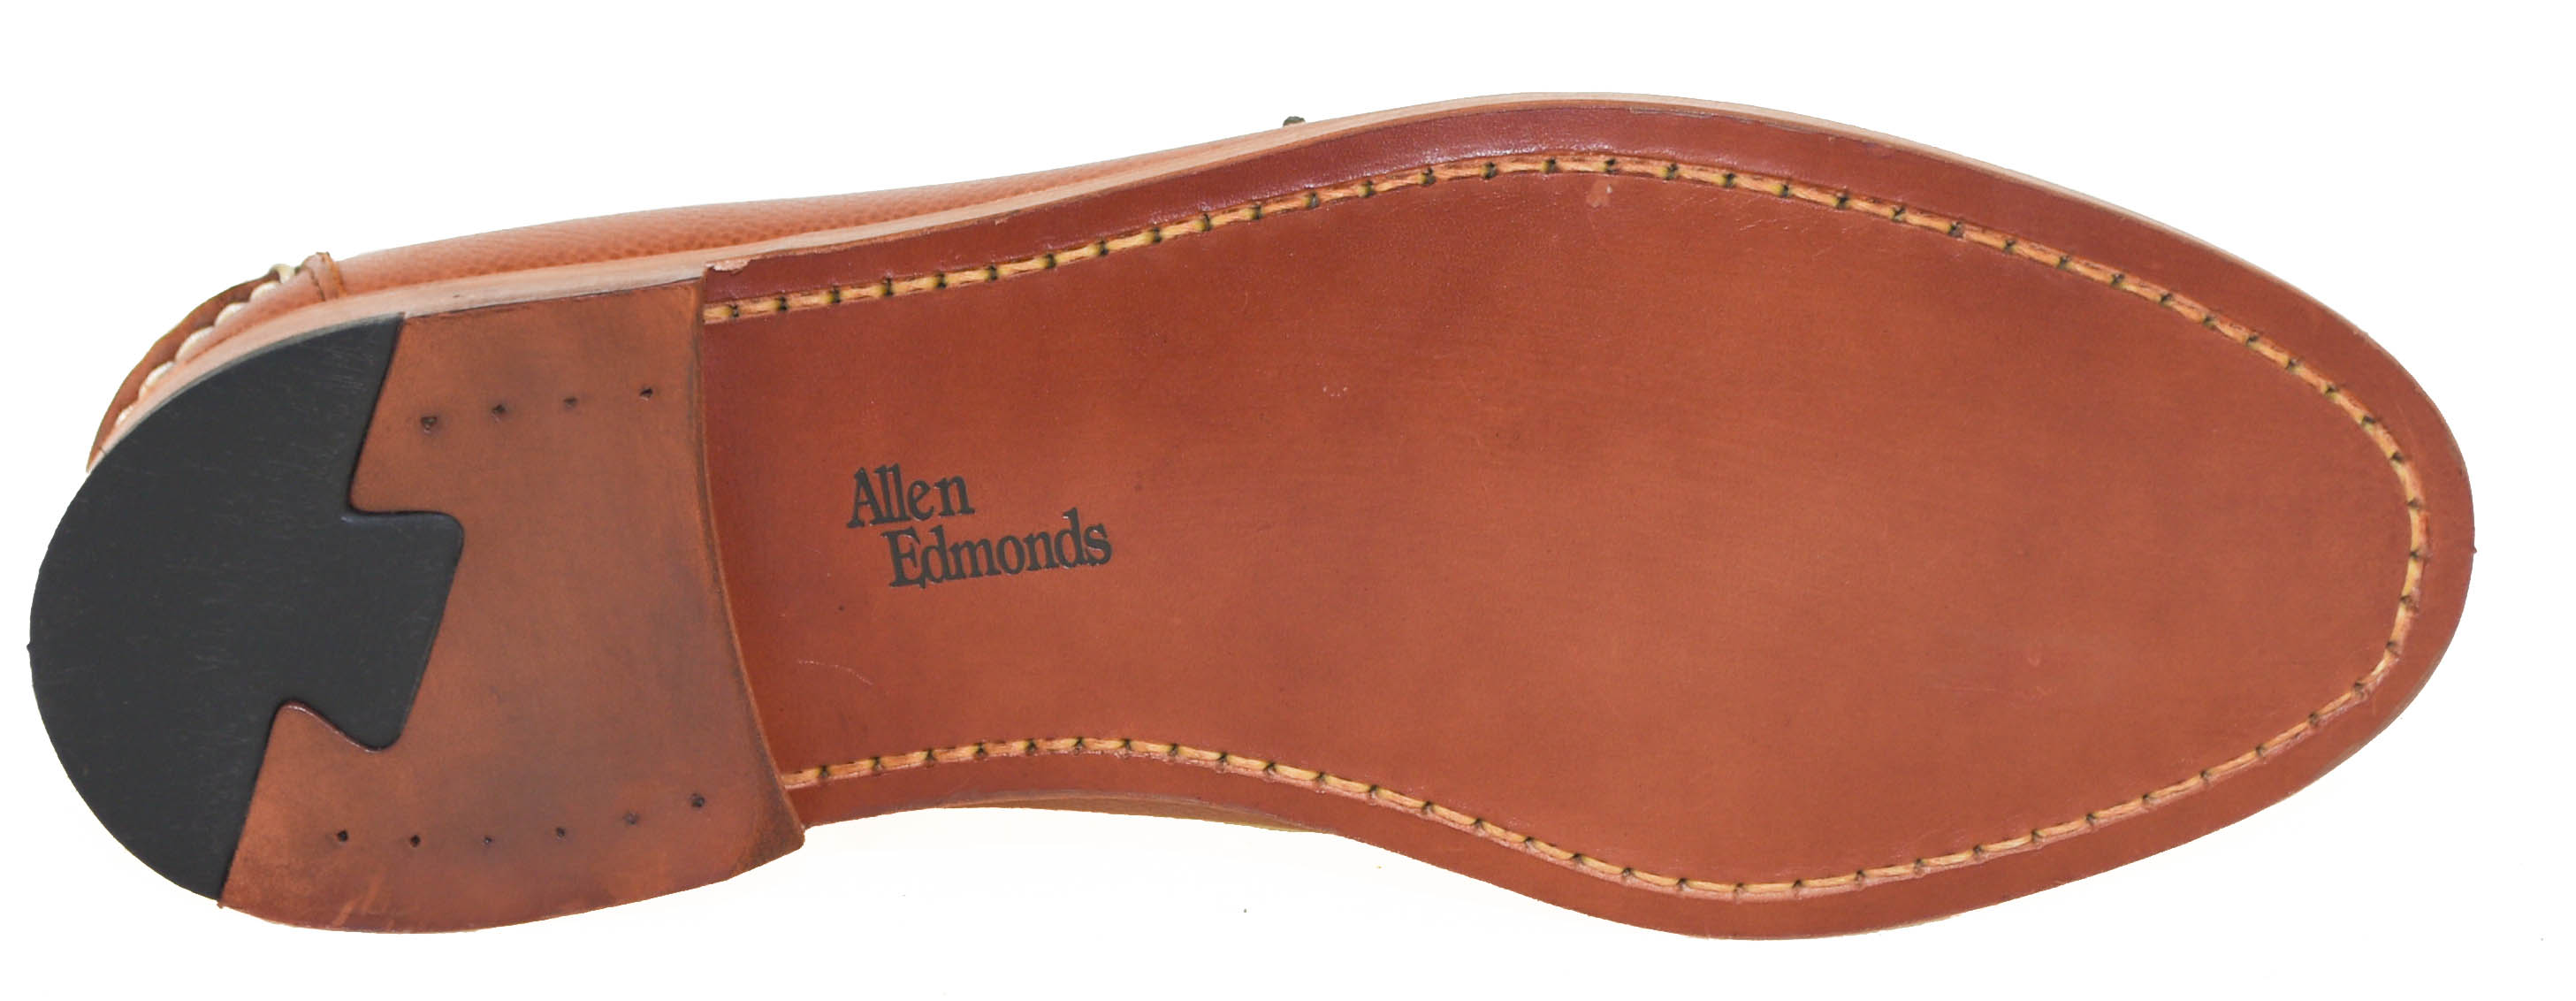 Allen Edmonds Men/'s Fort McHenry Penny Loafer Tan 50301 40139